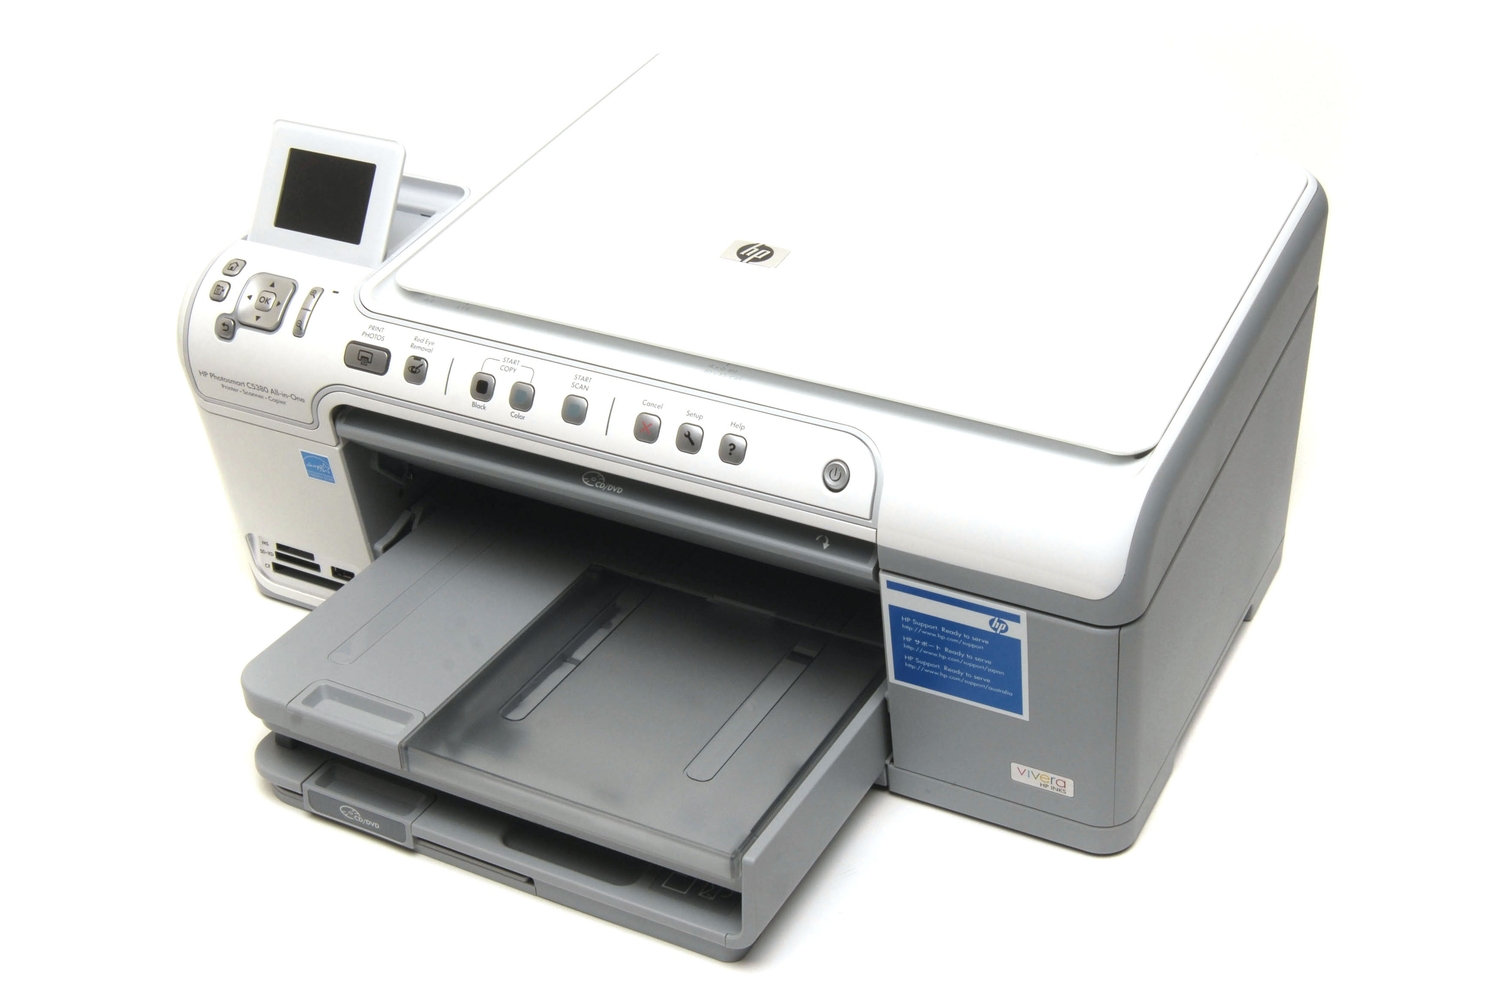 HP Photosmart C5380 Review: The new king of the inkjets? - Printers &  Scanners - Multifunction Devices - PC World Australia